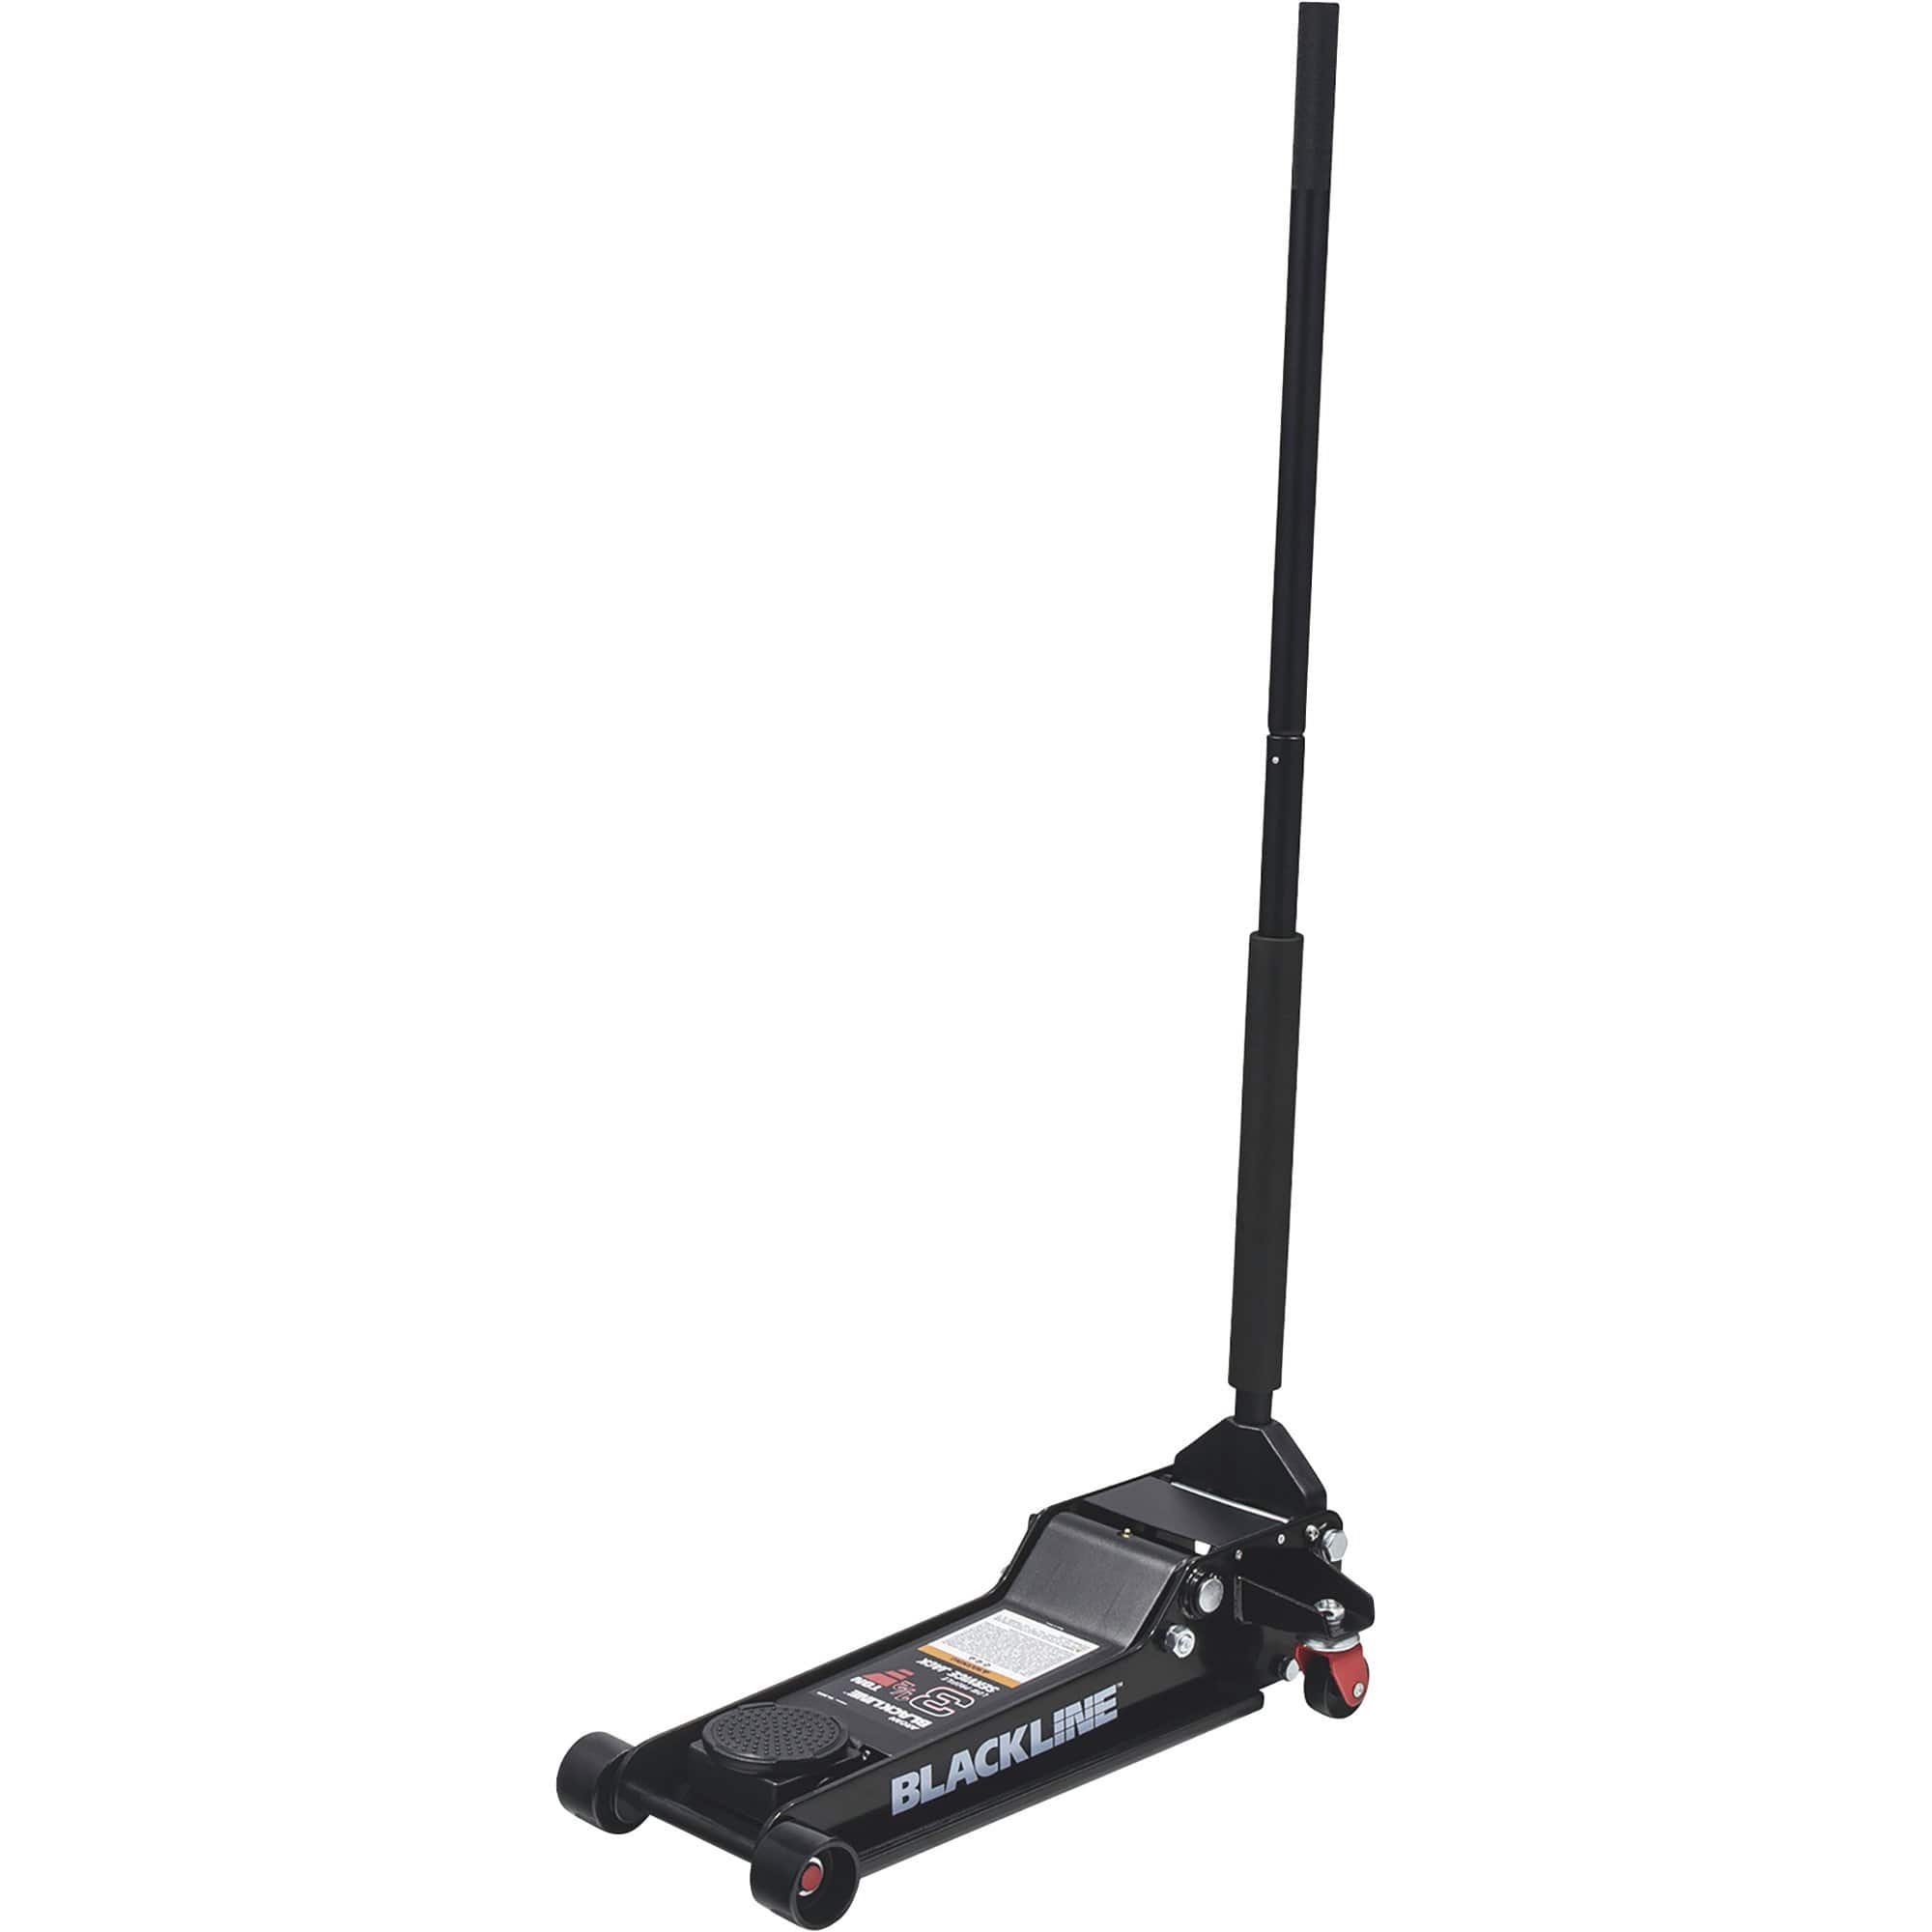 Blackline by Arcan 3 1/2-Ton Low-Profile Professional Service Floor Jack — Model#  XL35B $129.99 FS w/code 273543 @northerntool